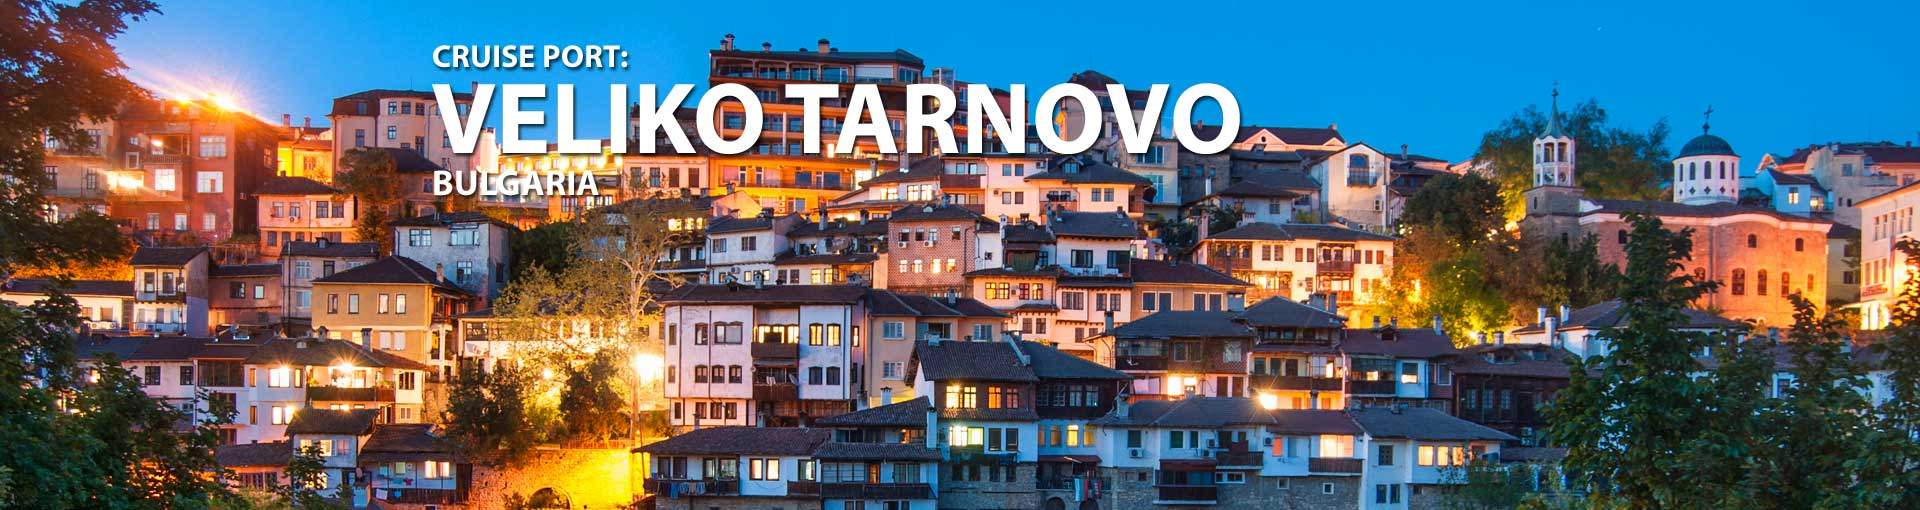 Cruises to Veliko Tarnovo, Bulgaria